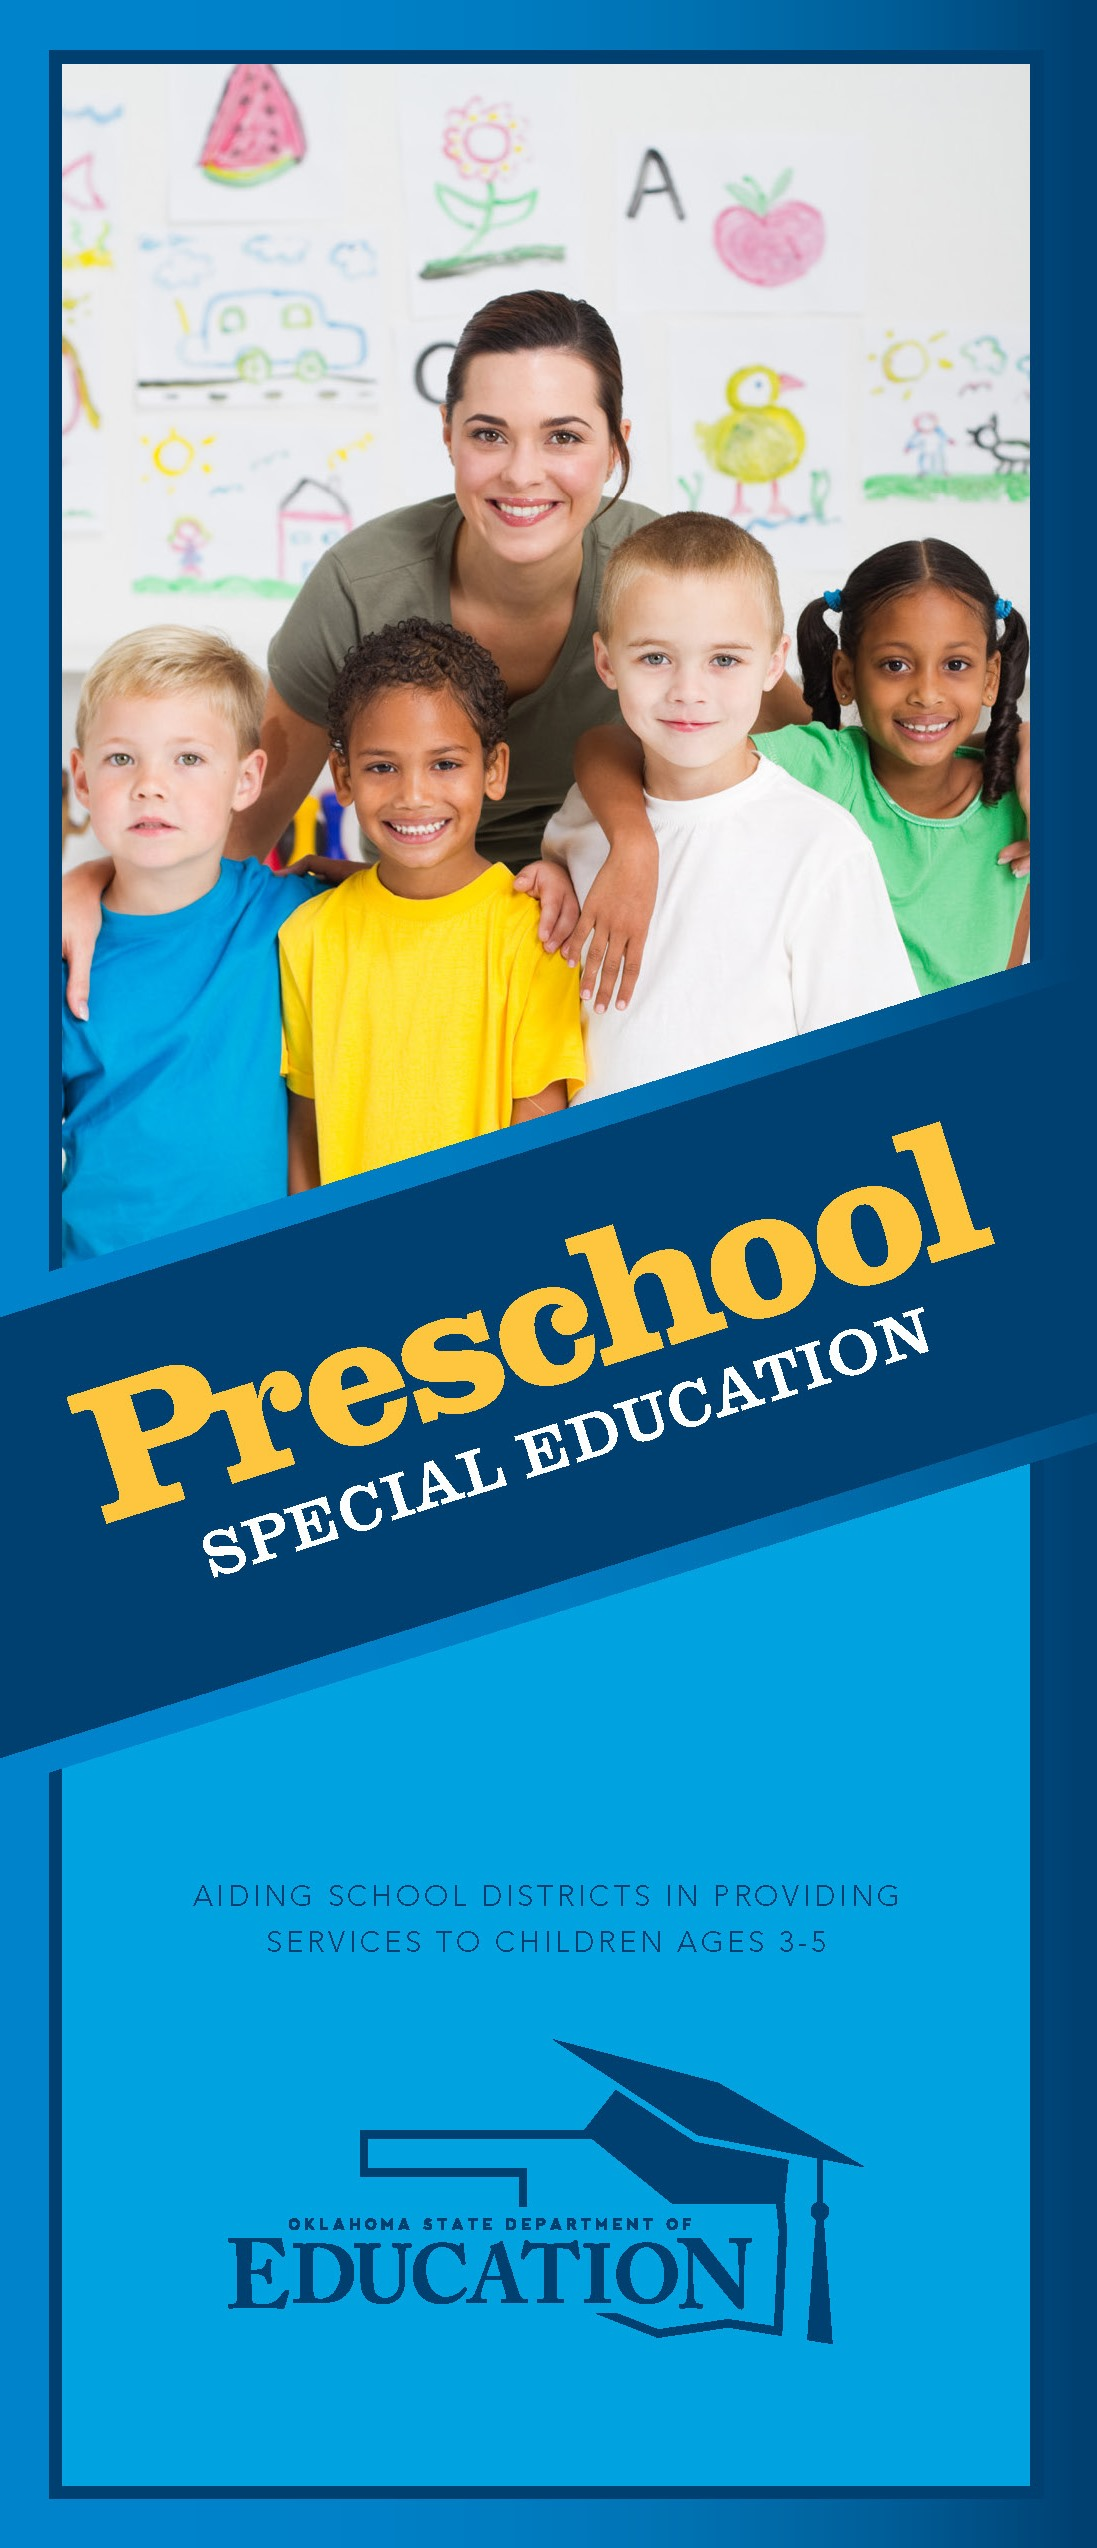 Education Department Civil Rights >> Special Education Early Childhood Provider Resources ...